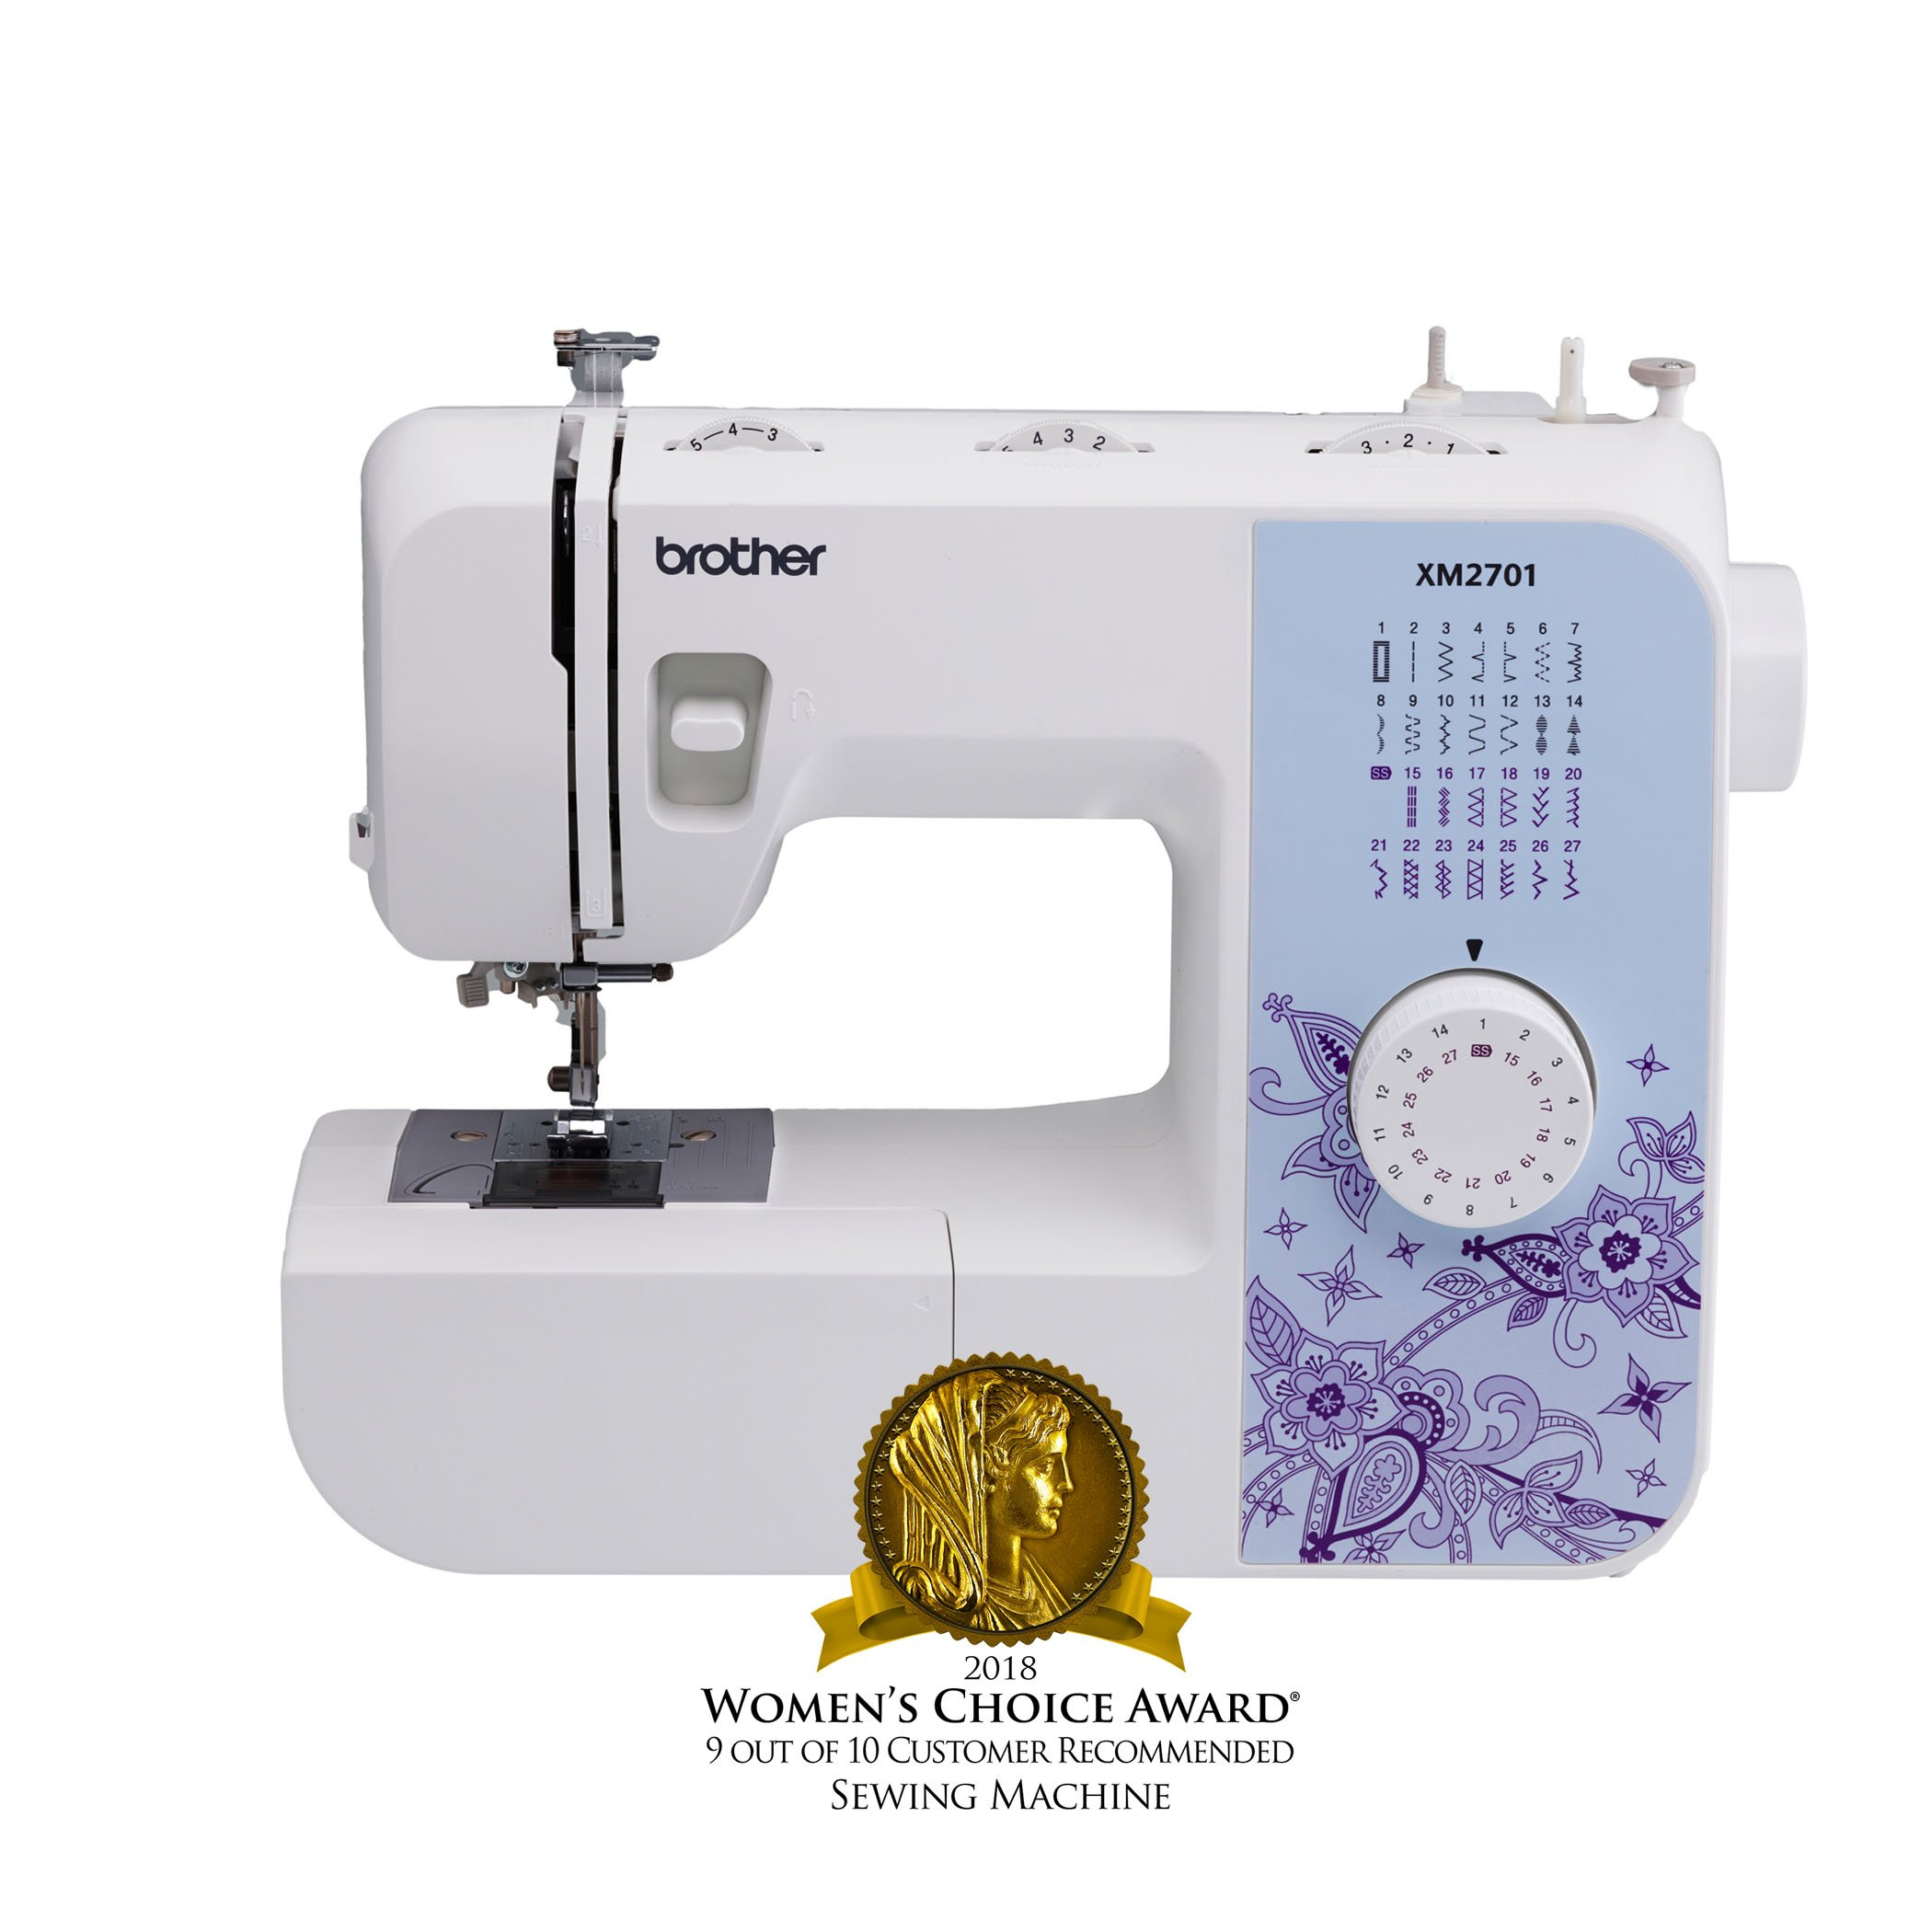 Best Time Of Year To Buy A Sewing Machine